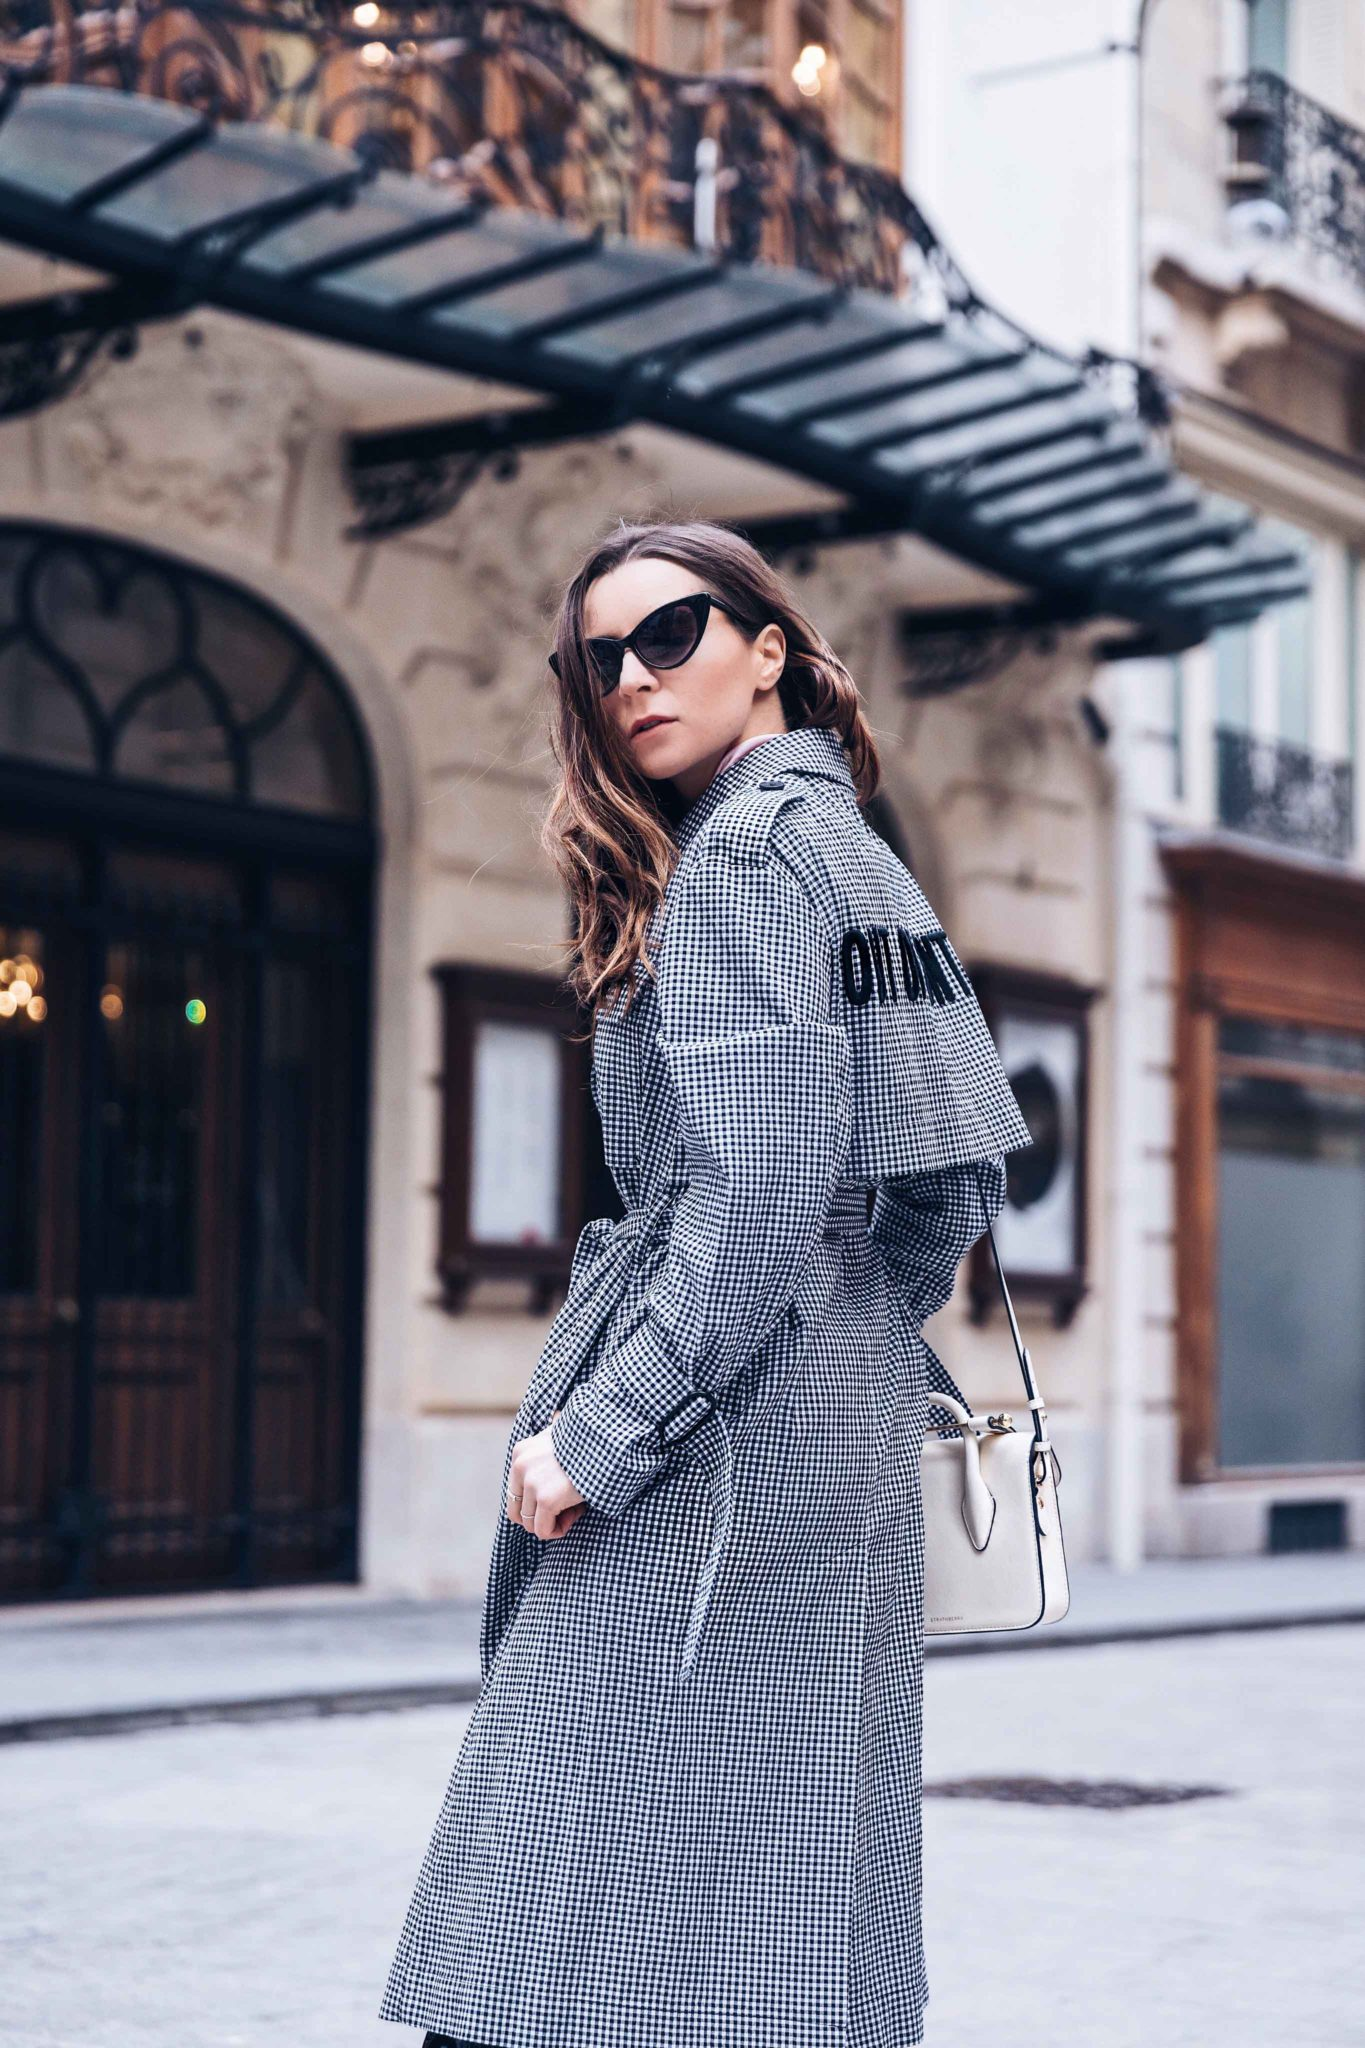 Spring Trench Coat - Gingham Trench Coat - Long Trench coat - Out Of Control - Mo&Co - Paris - Fashion Blogger